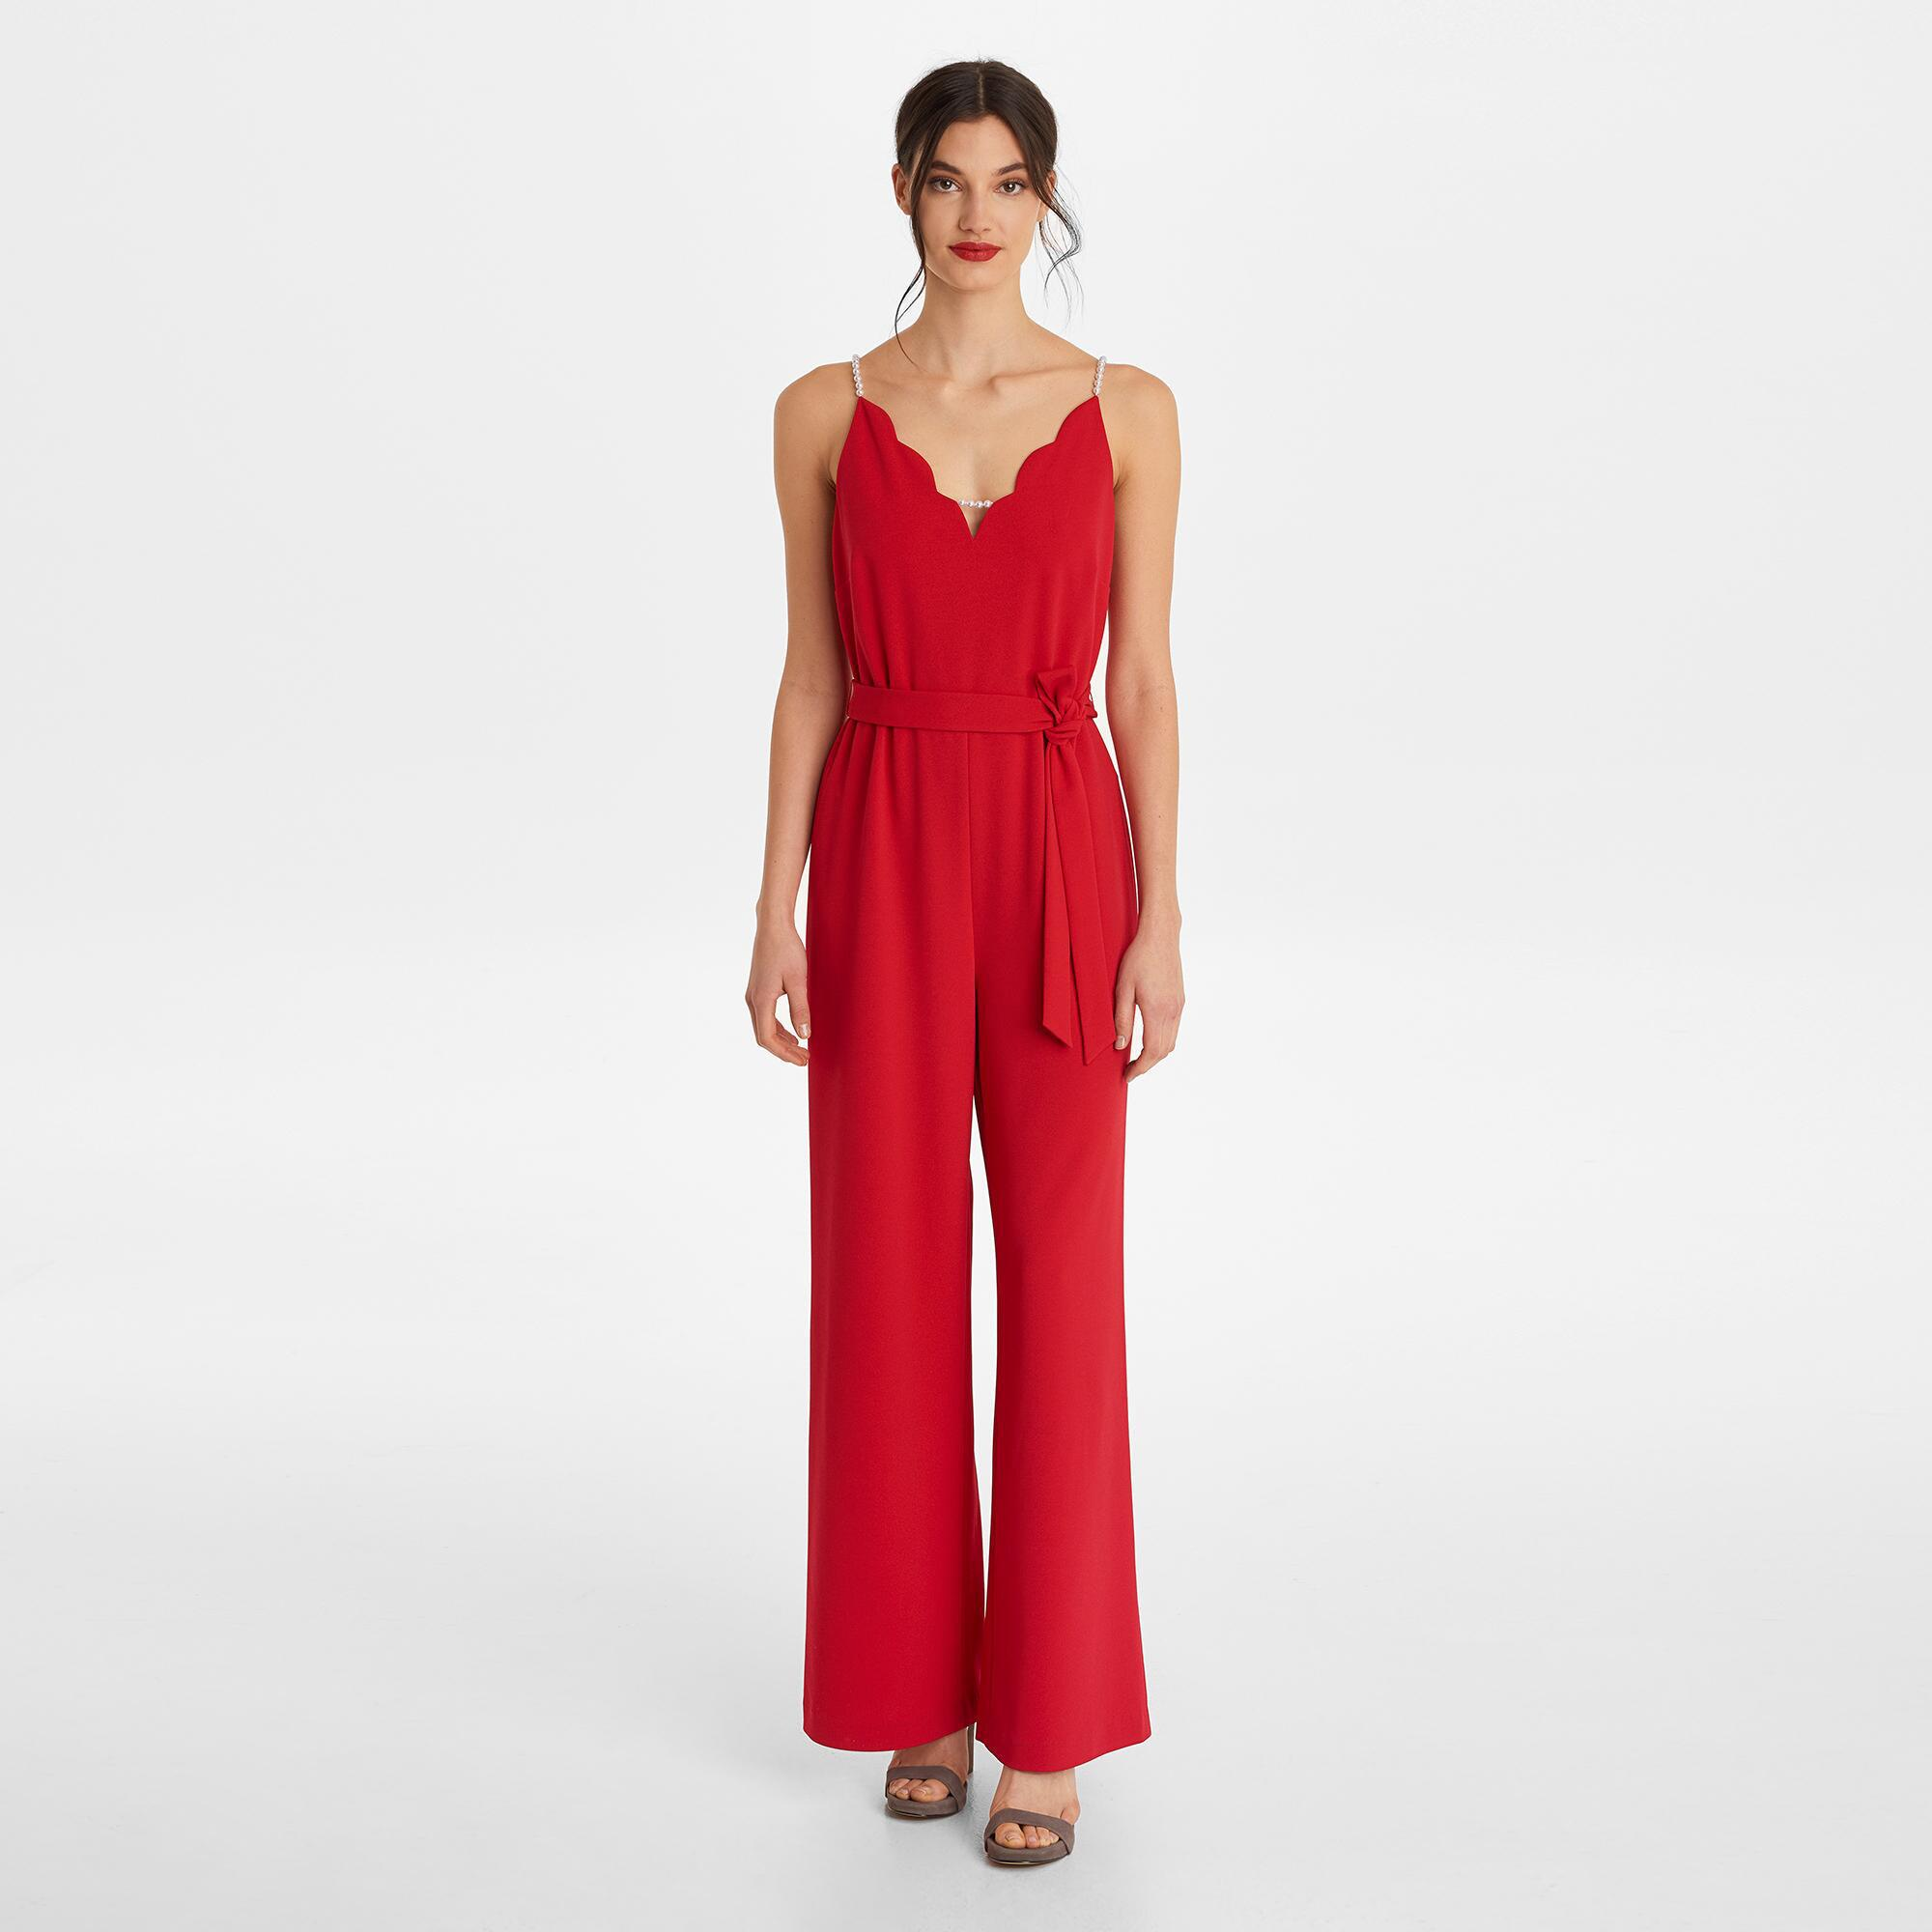 c36d7a1e471 Lyst - Karl Lagerfeld Pearly Strap V-neck Wide-leg Jumpsuit in Red ...